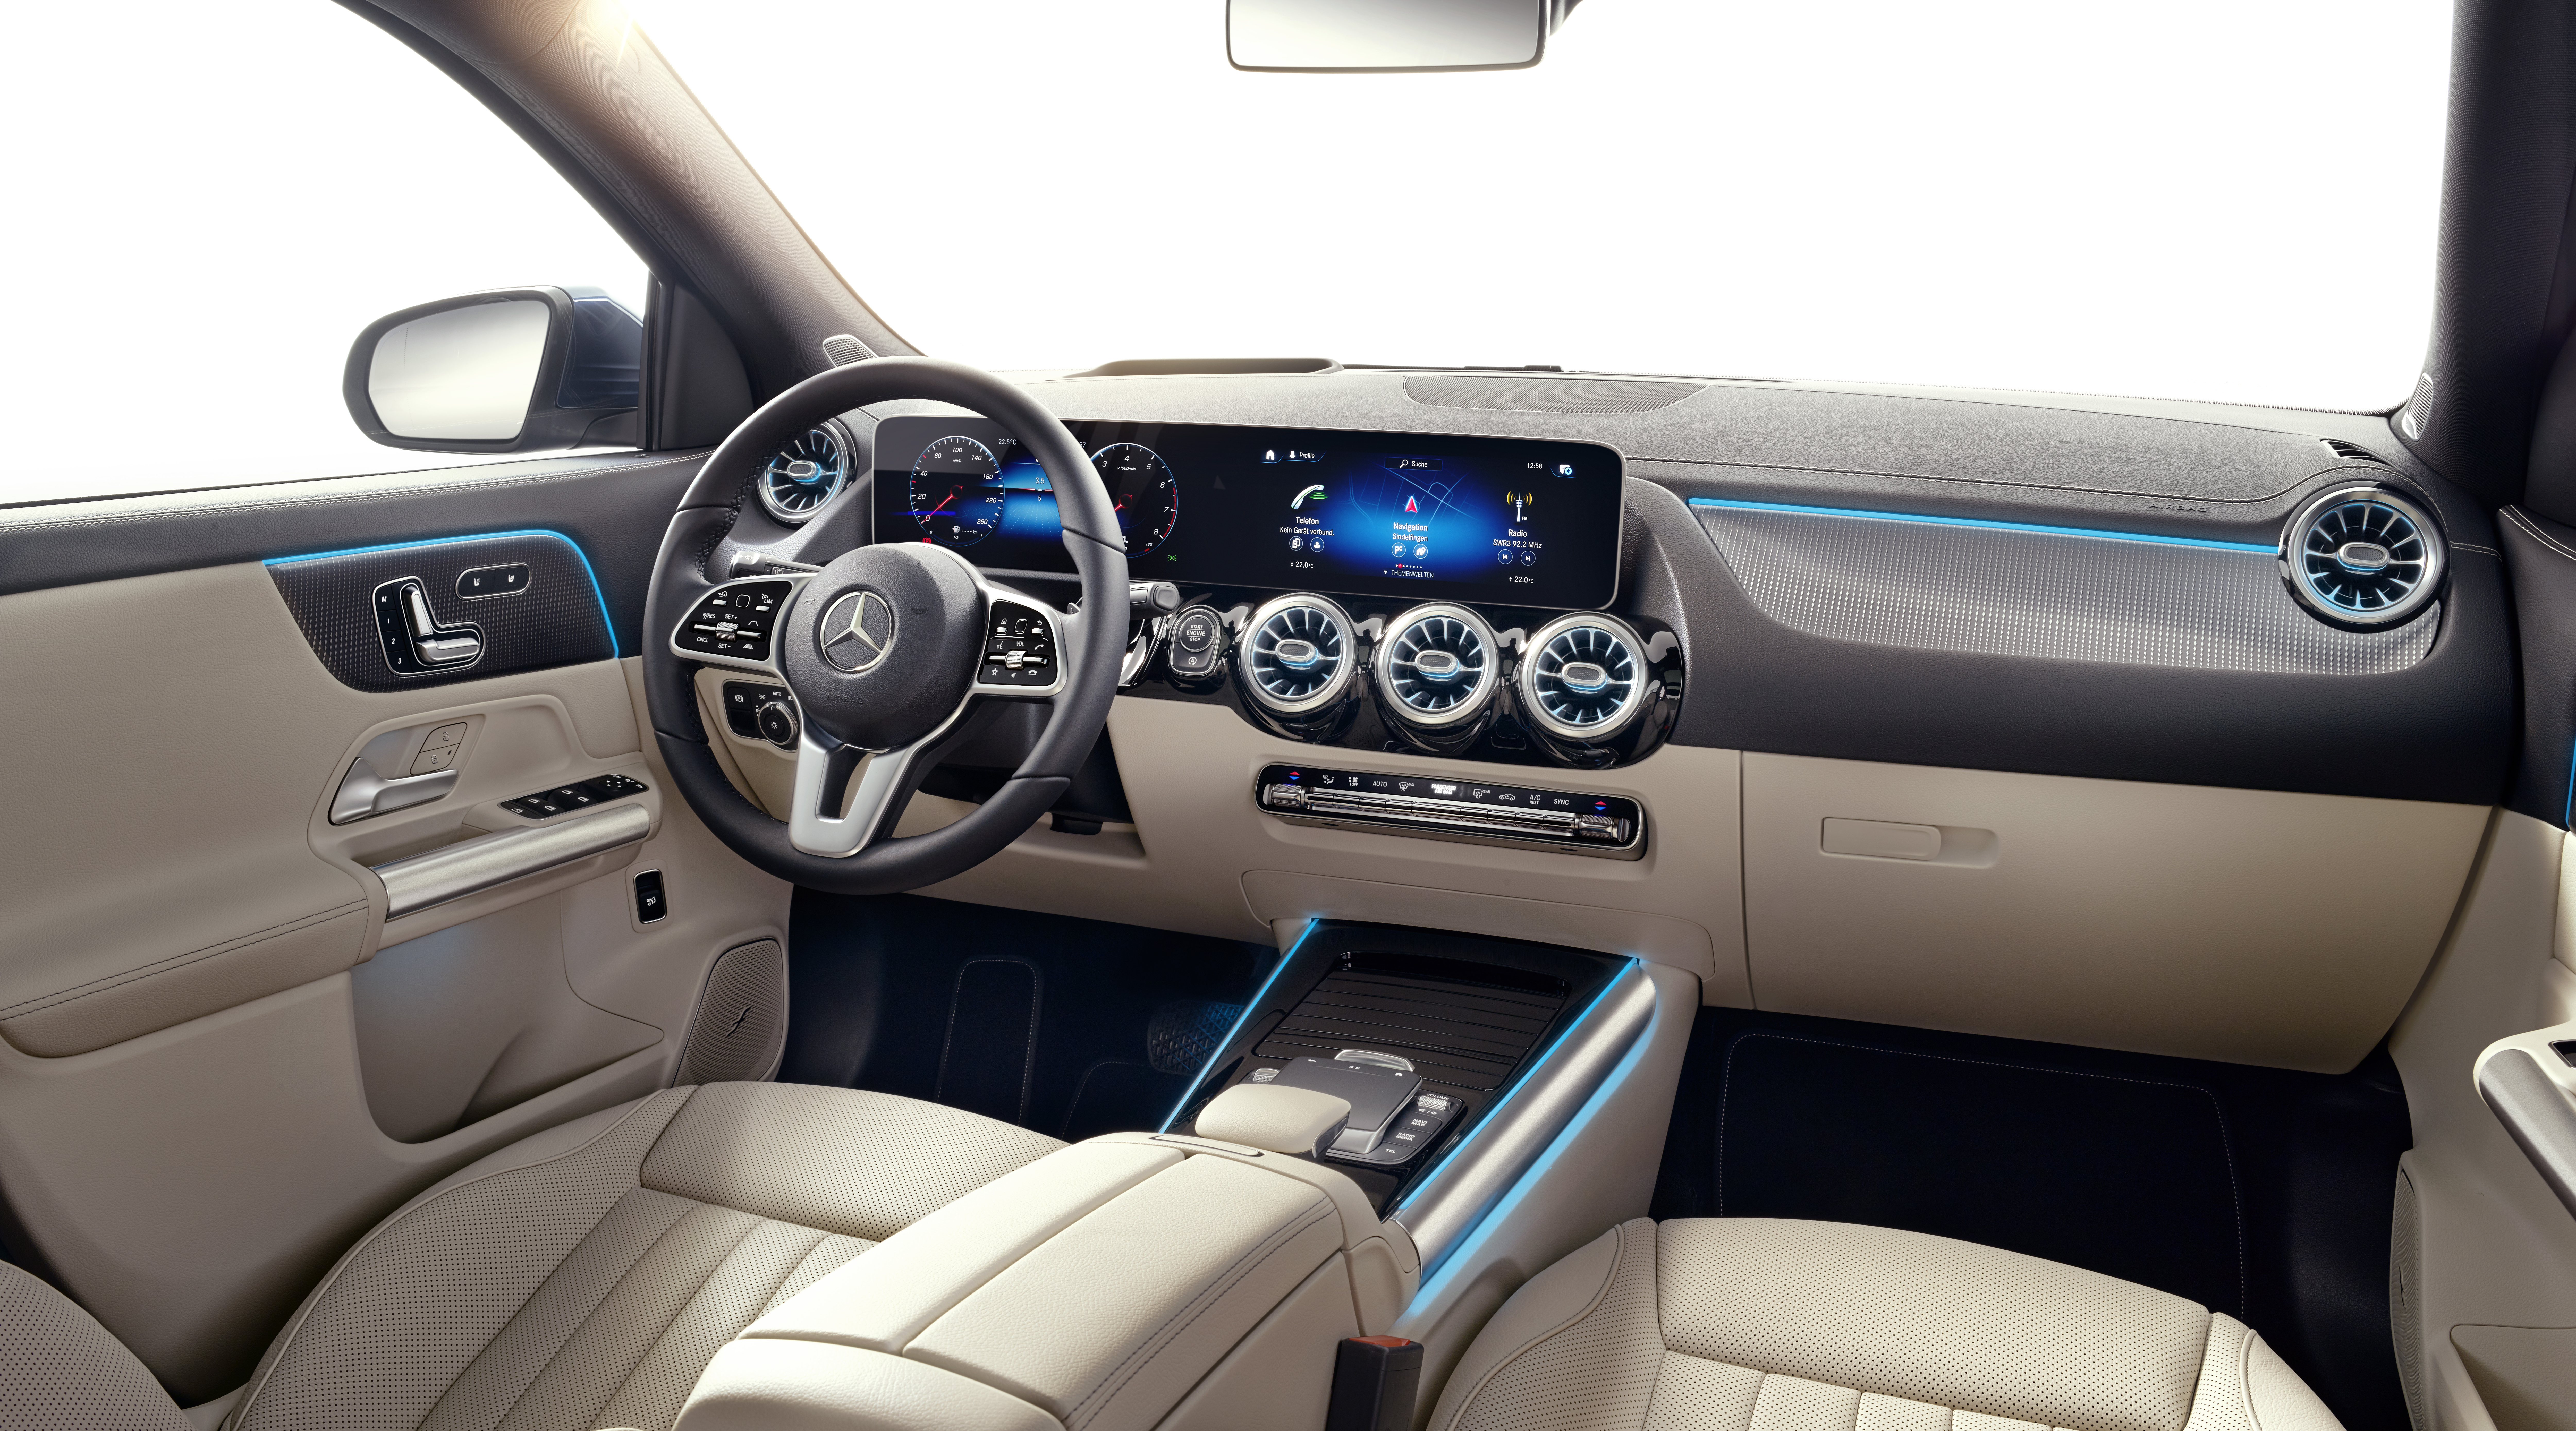 H247 Mercedes-Benz GLA revealed – BMW X2 rival grows taller and receives new tech and engines Image #1058642